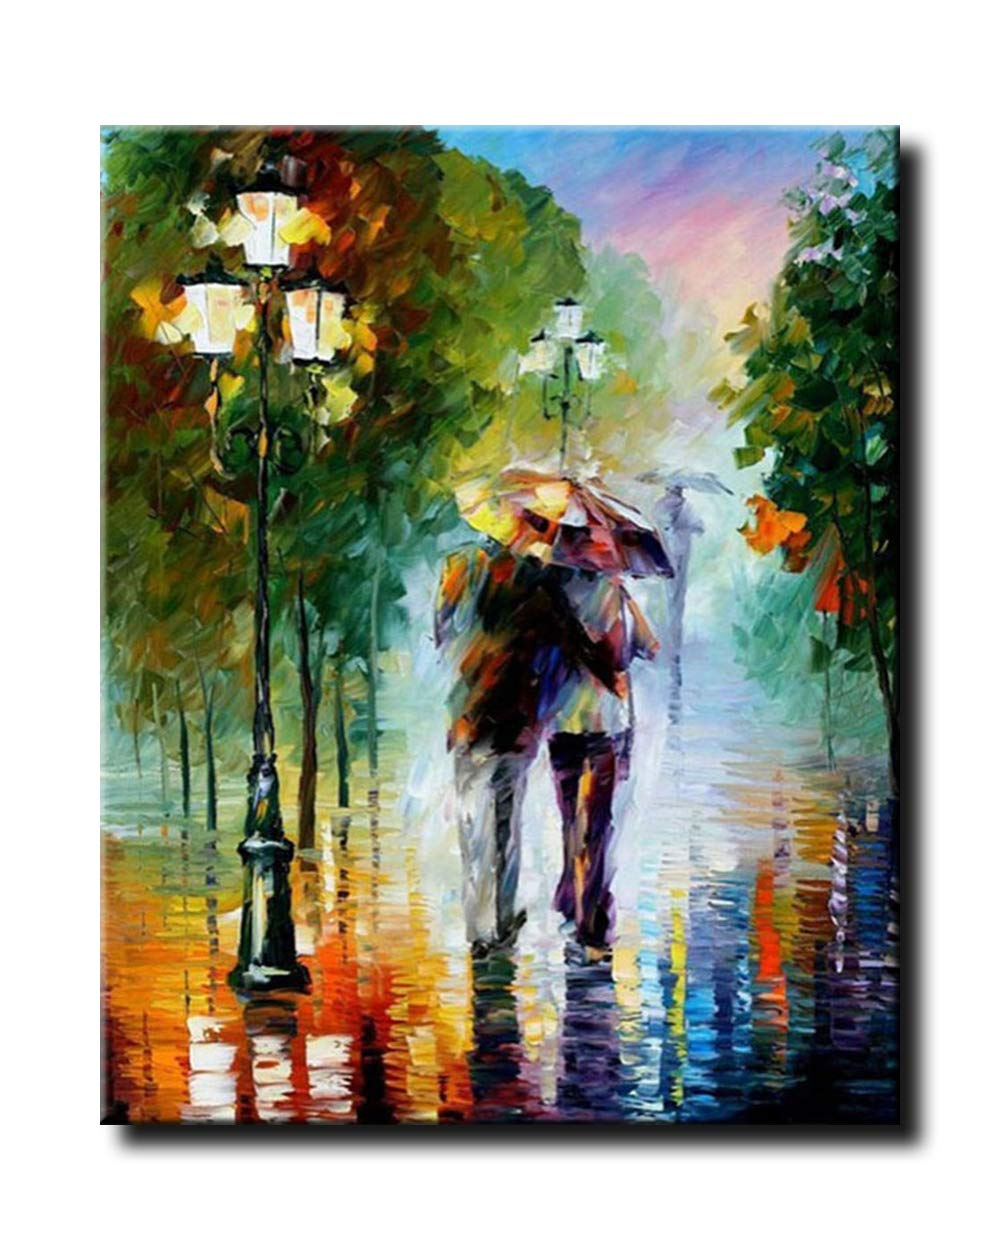 Paint by number Kits acrilico painting-romantic Rain 40,6/x 50,8/cm Shukqueen DIY dipinto a olio adulto Framed Canvas